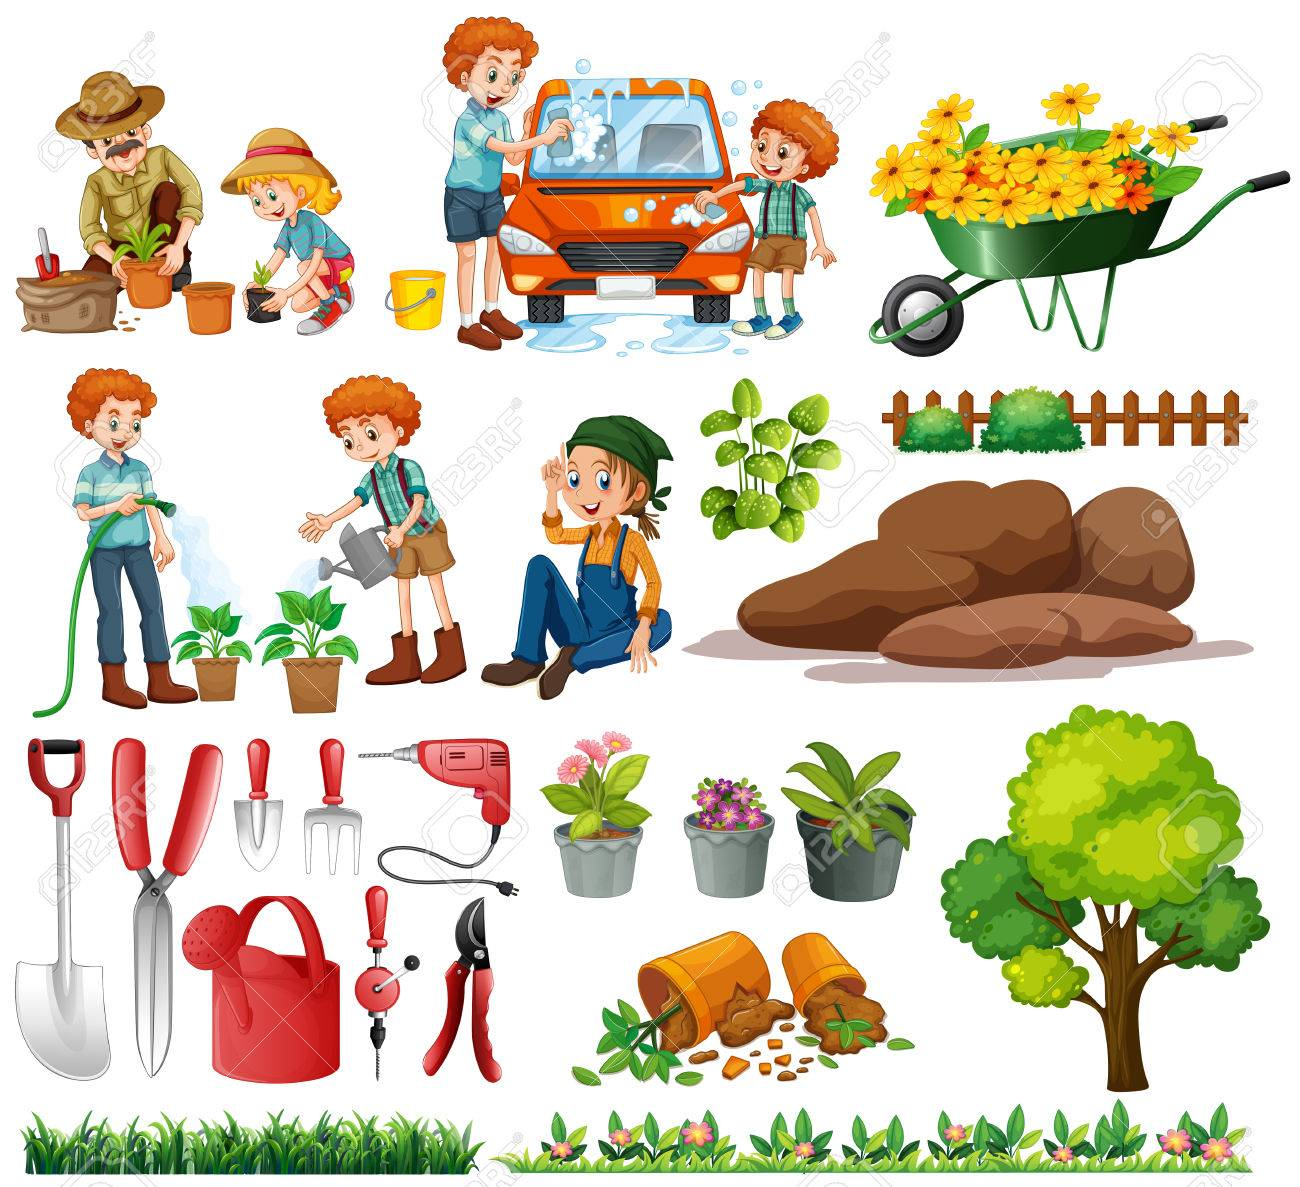 hight resolution of family members doing chores and gardening illustration stock vector 56549091